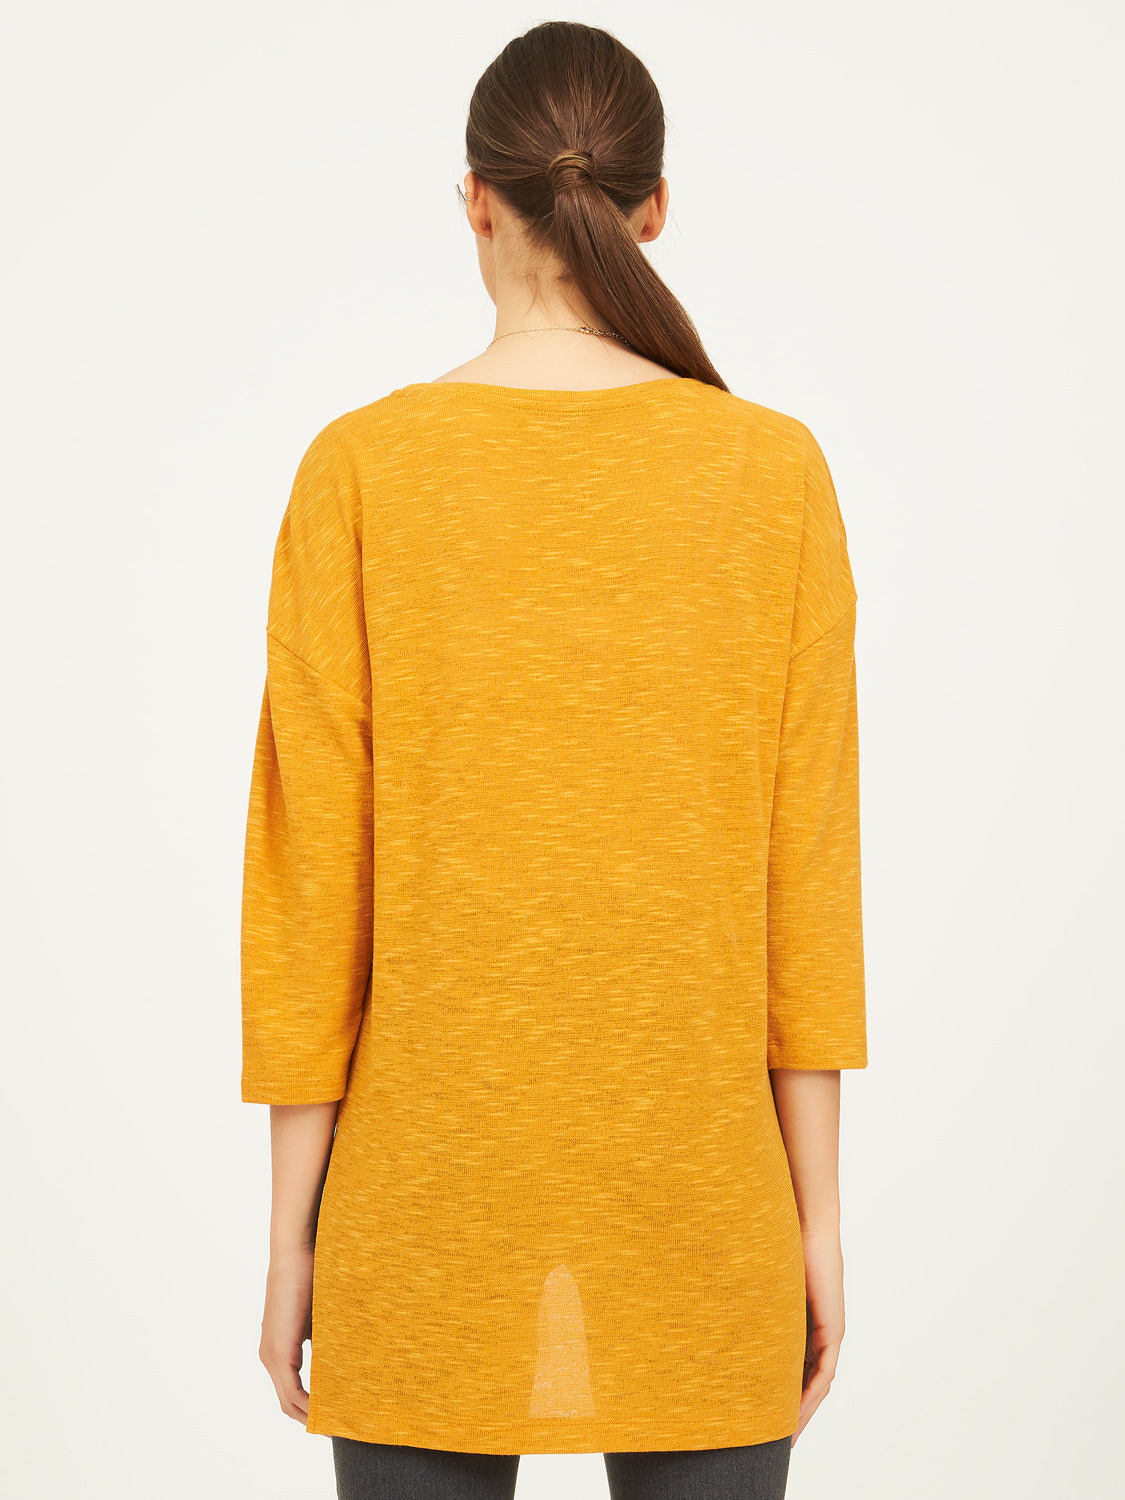 ¾ Dolman Sleeve Slub Sweater Knit